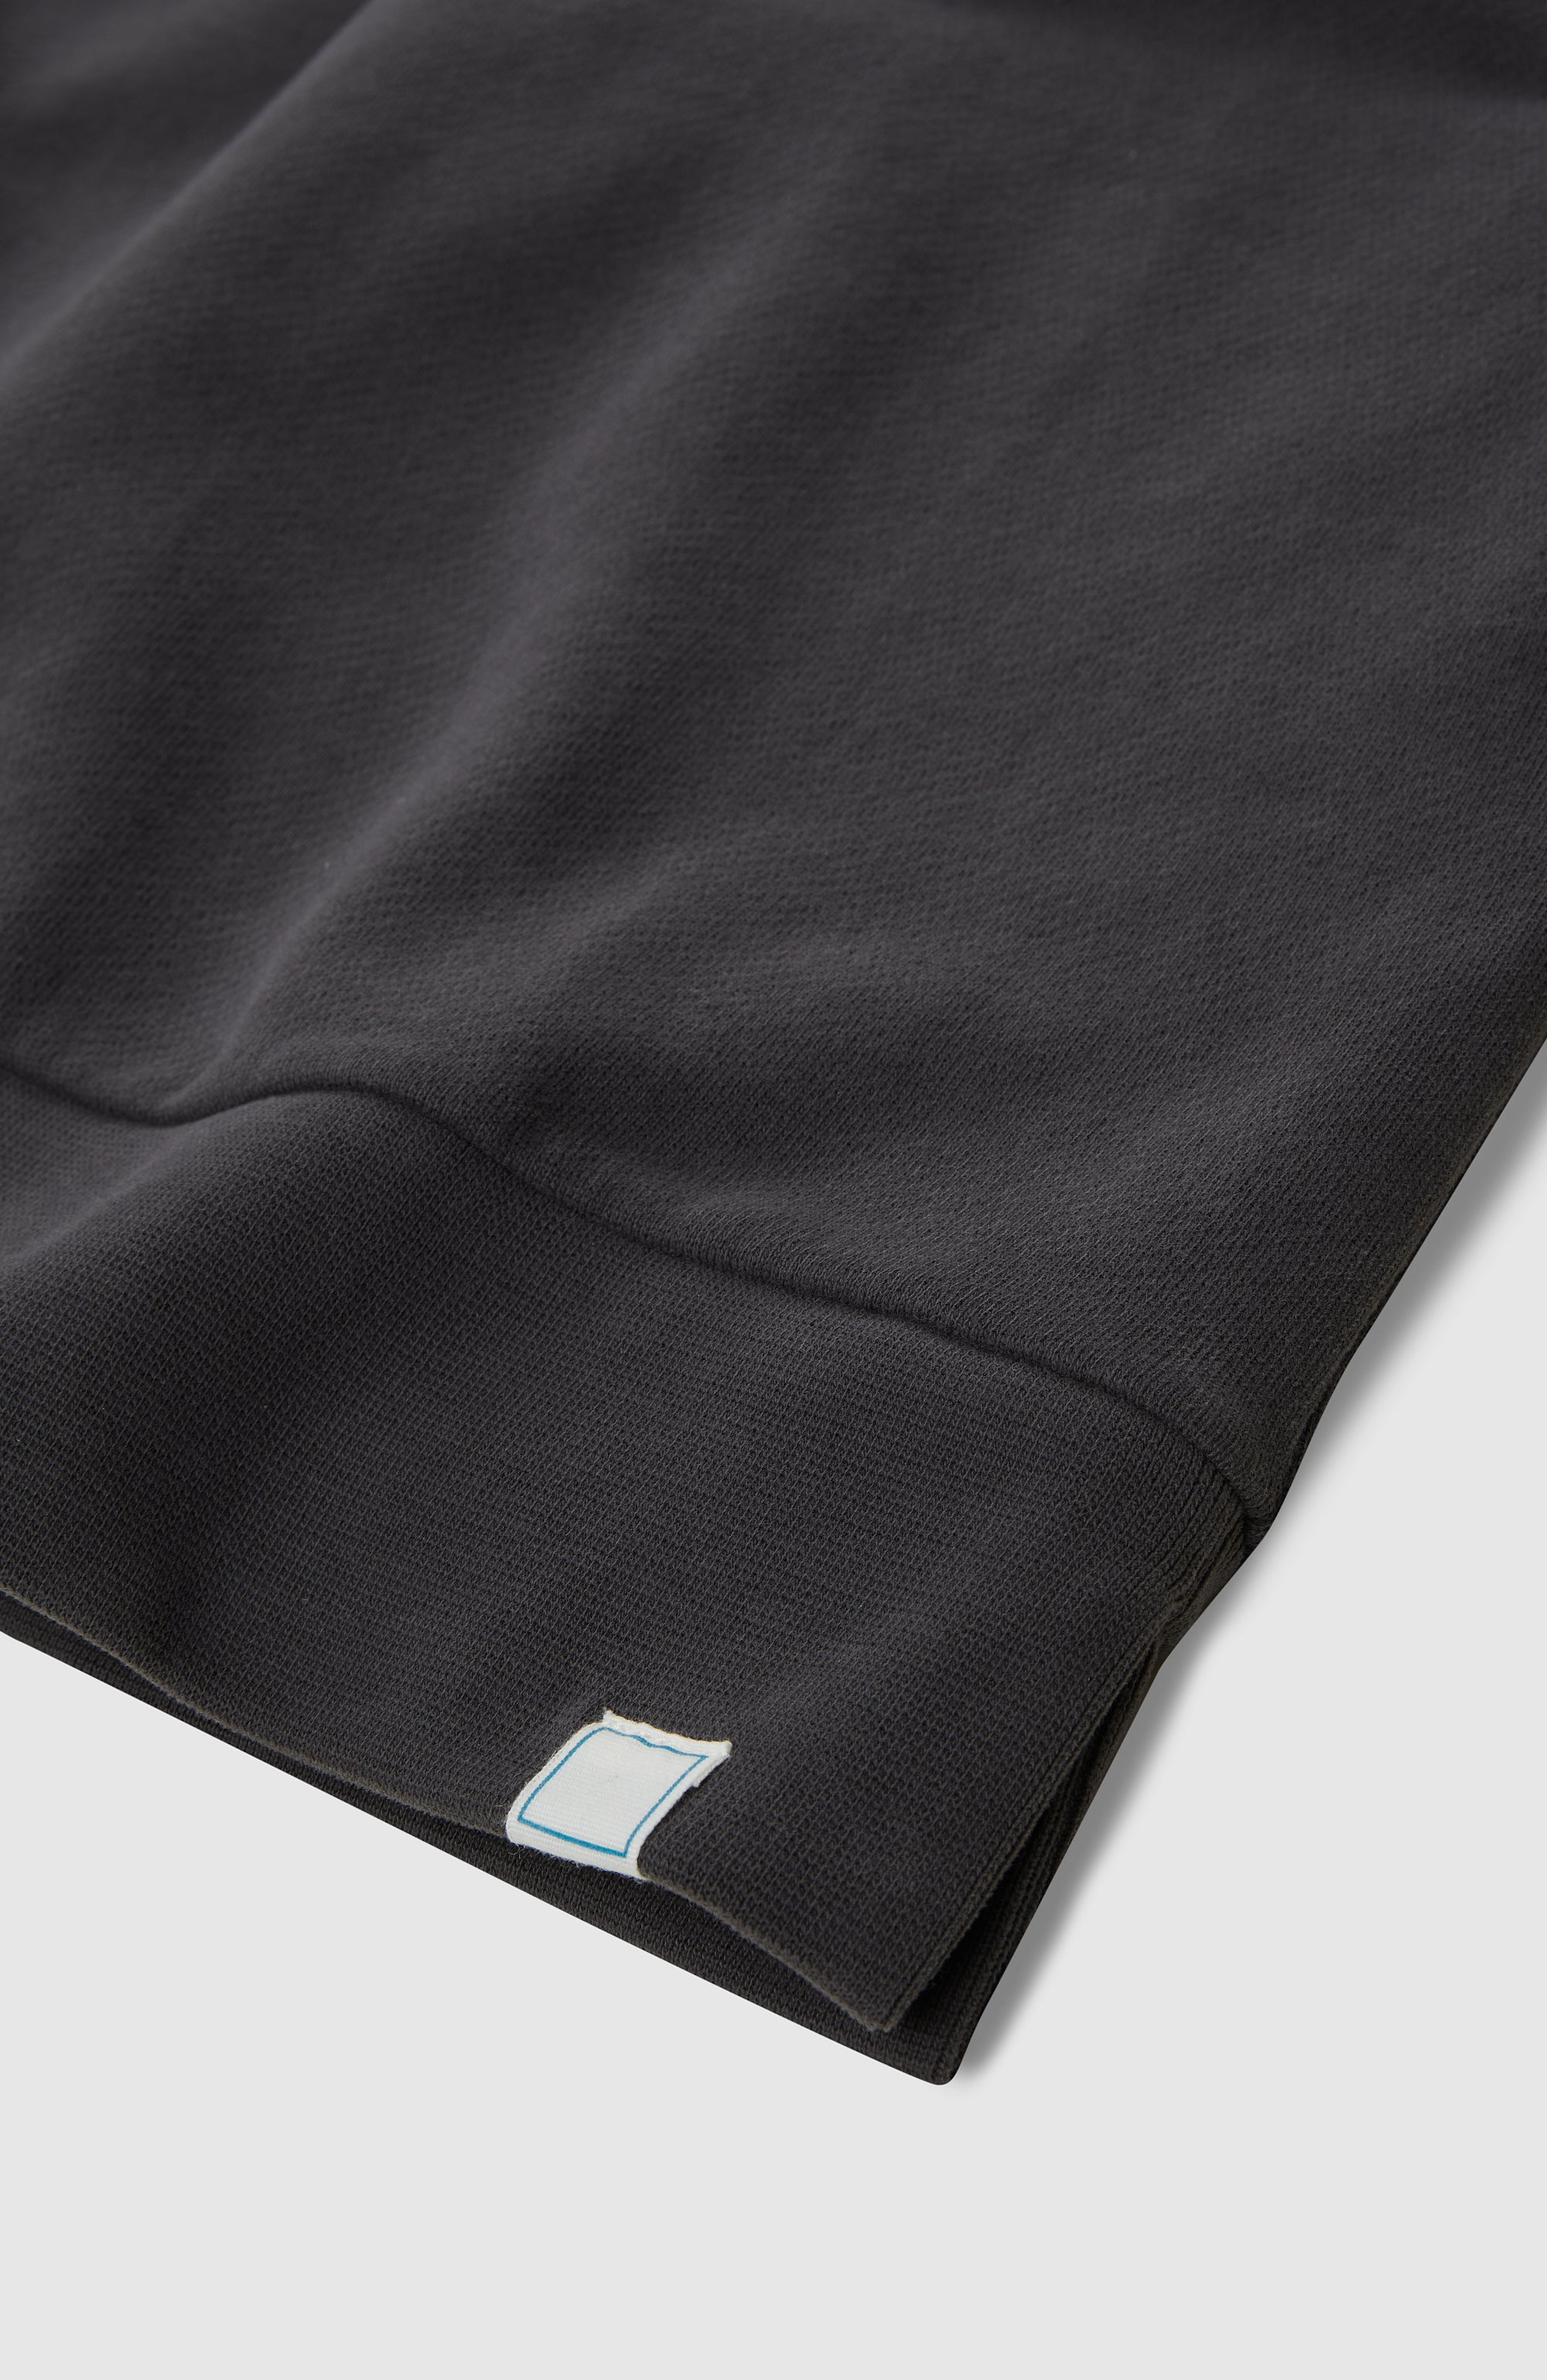 Drop Shoulder Crew - Charcoal